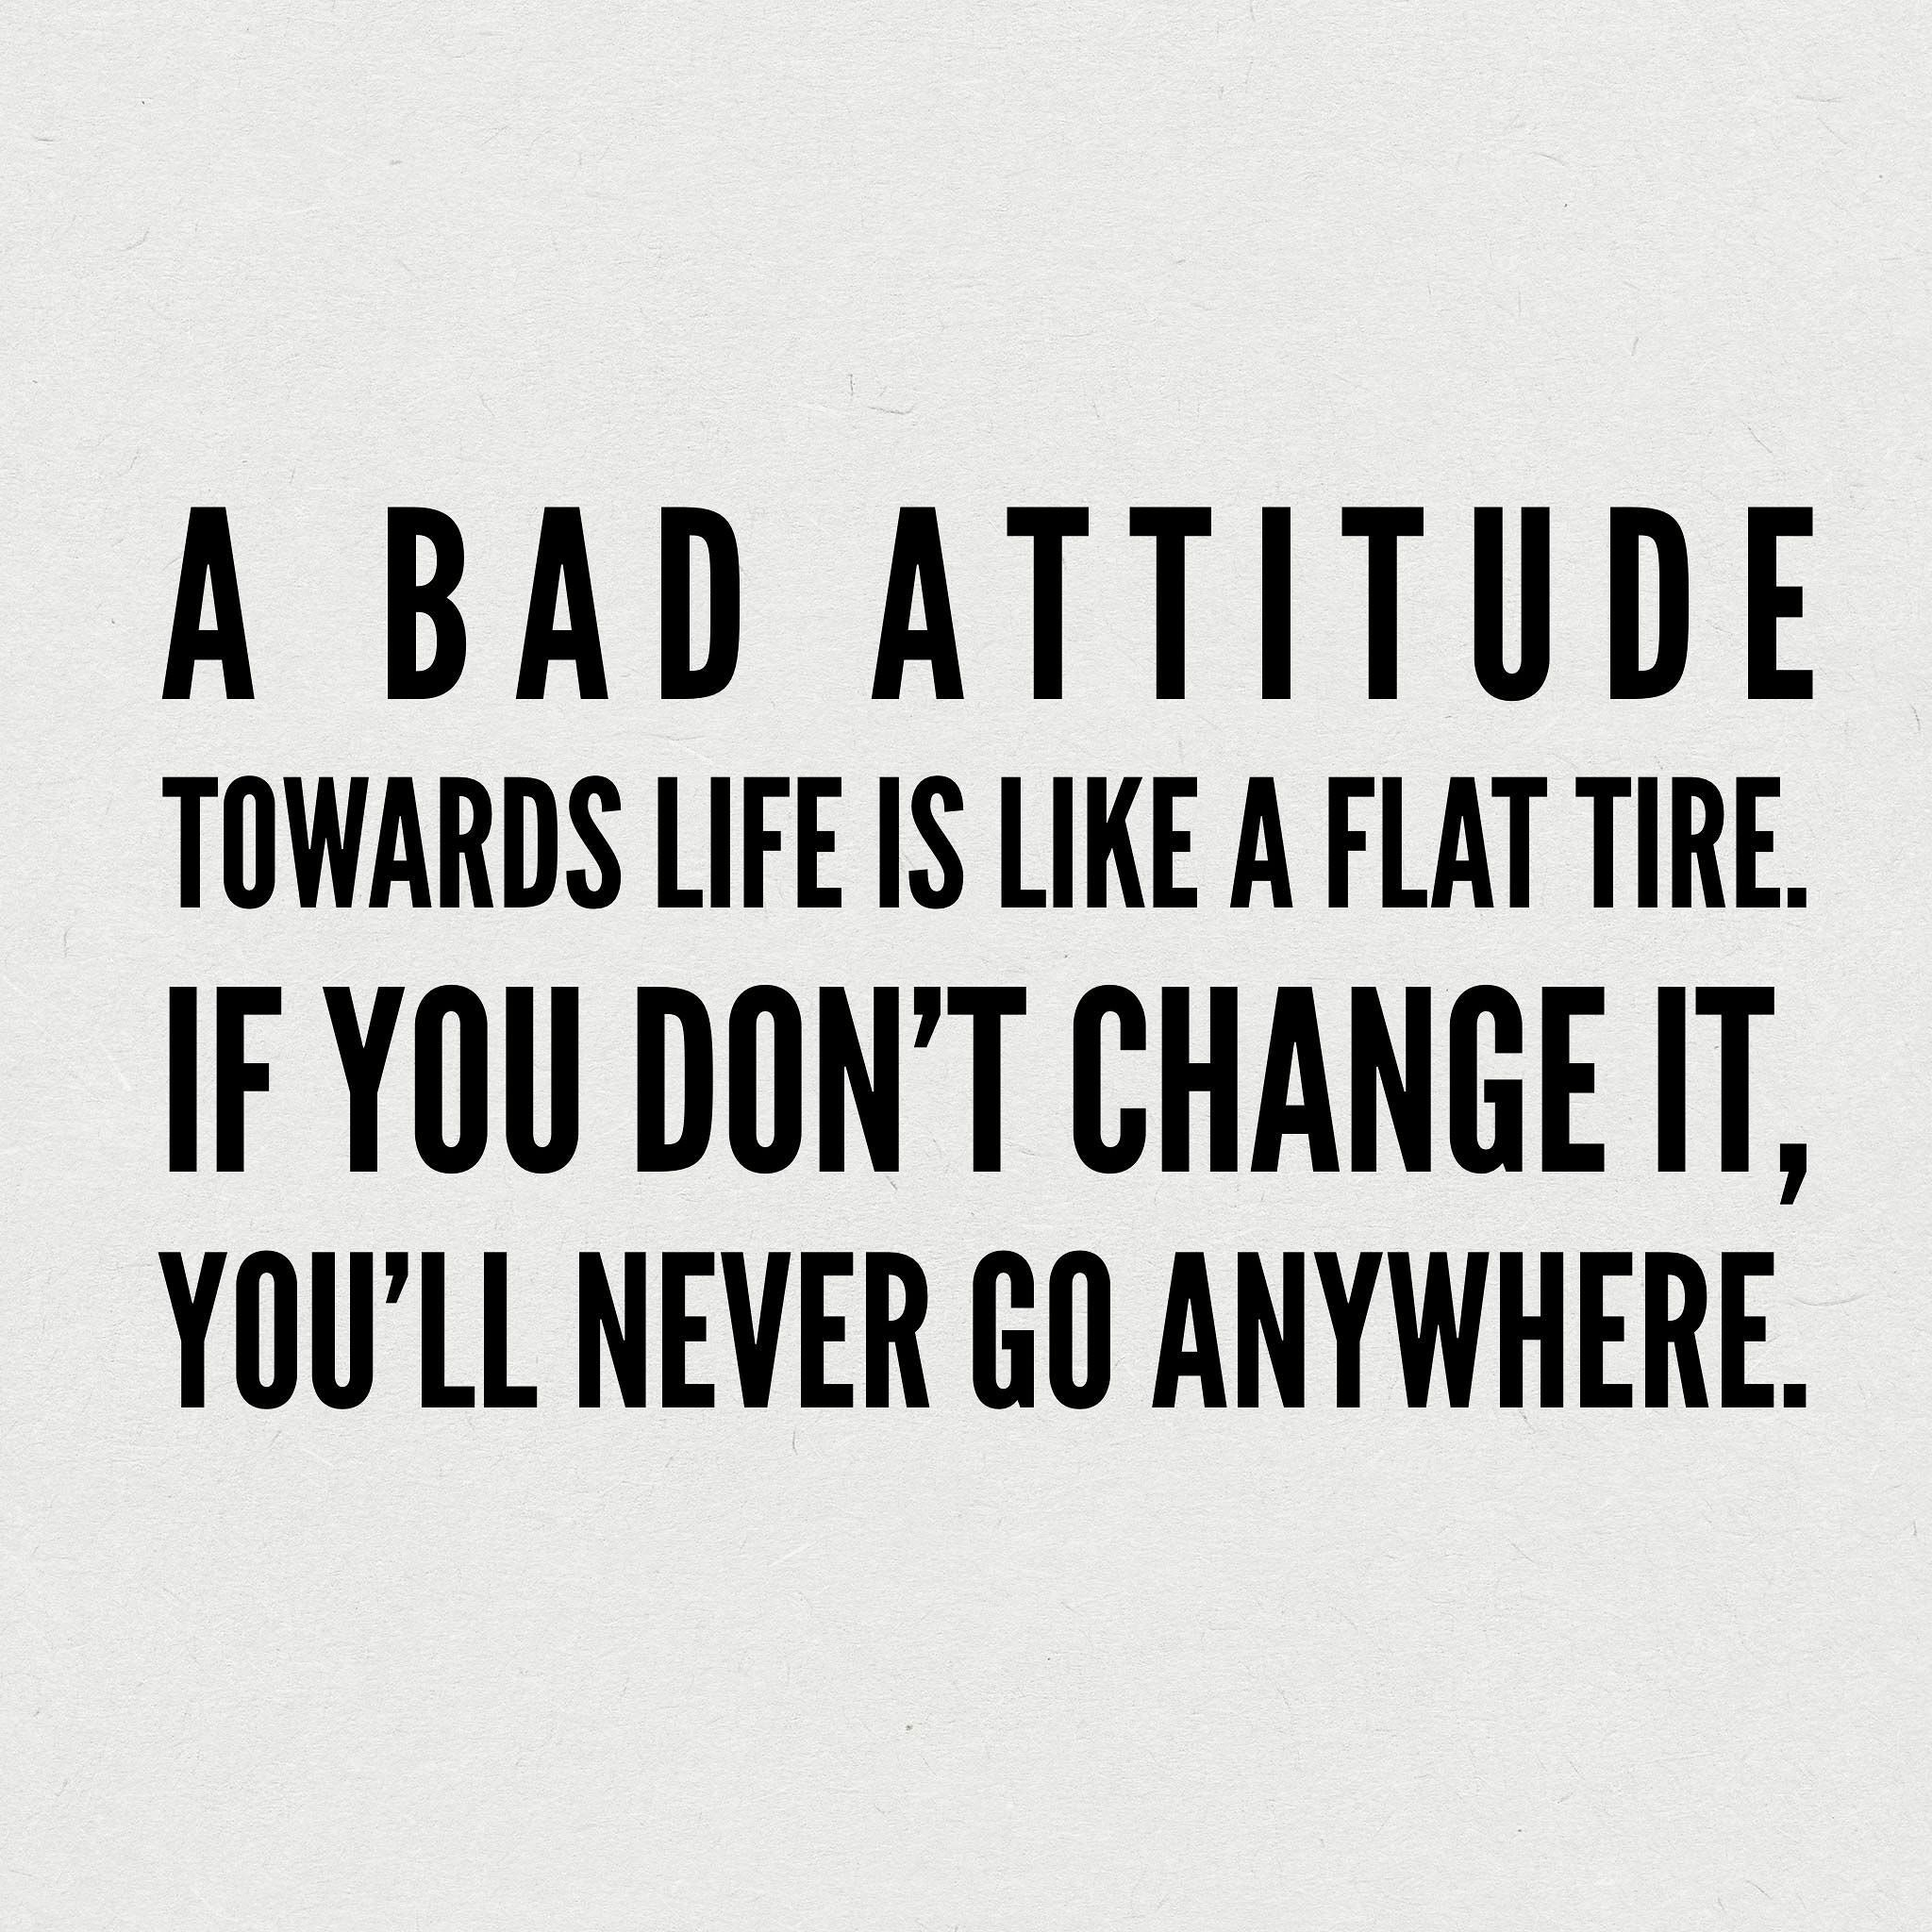 A bad attitude towards life is like a flat tire If you don